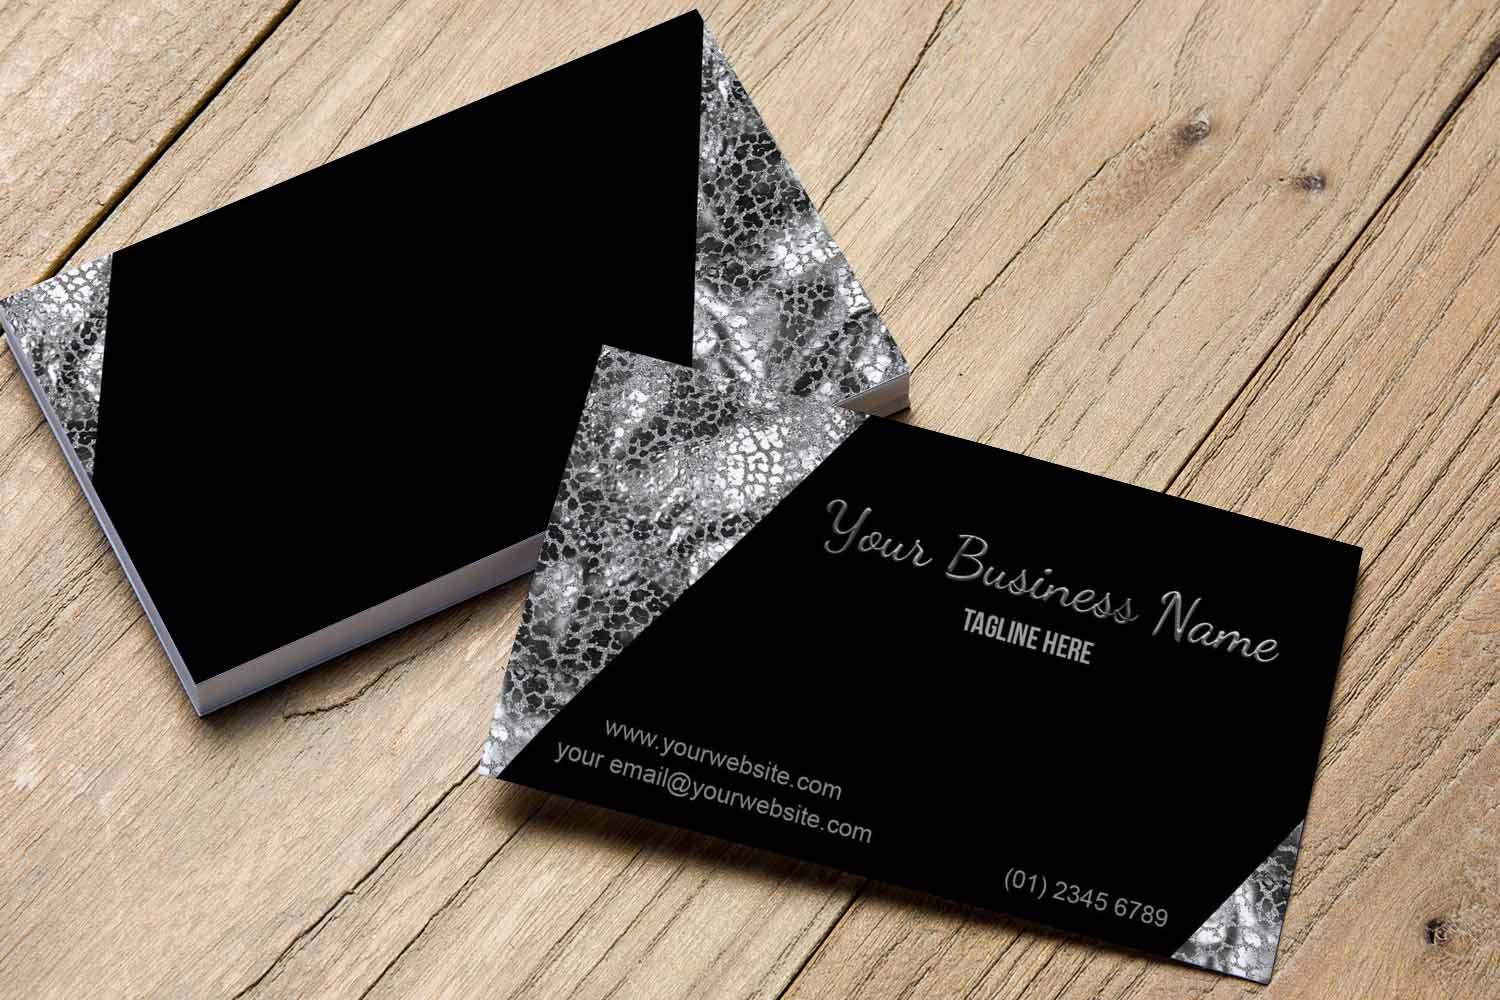 Stylish Black and Silver Business Card | Design Bundles